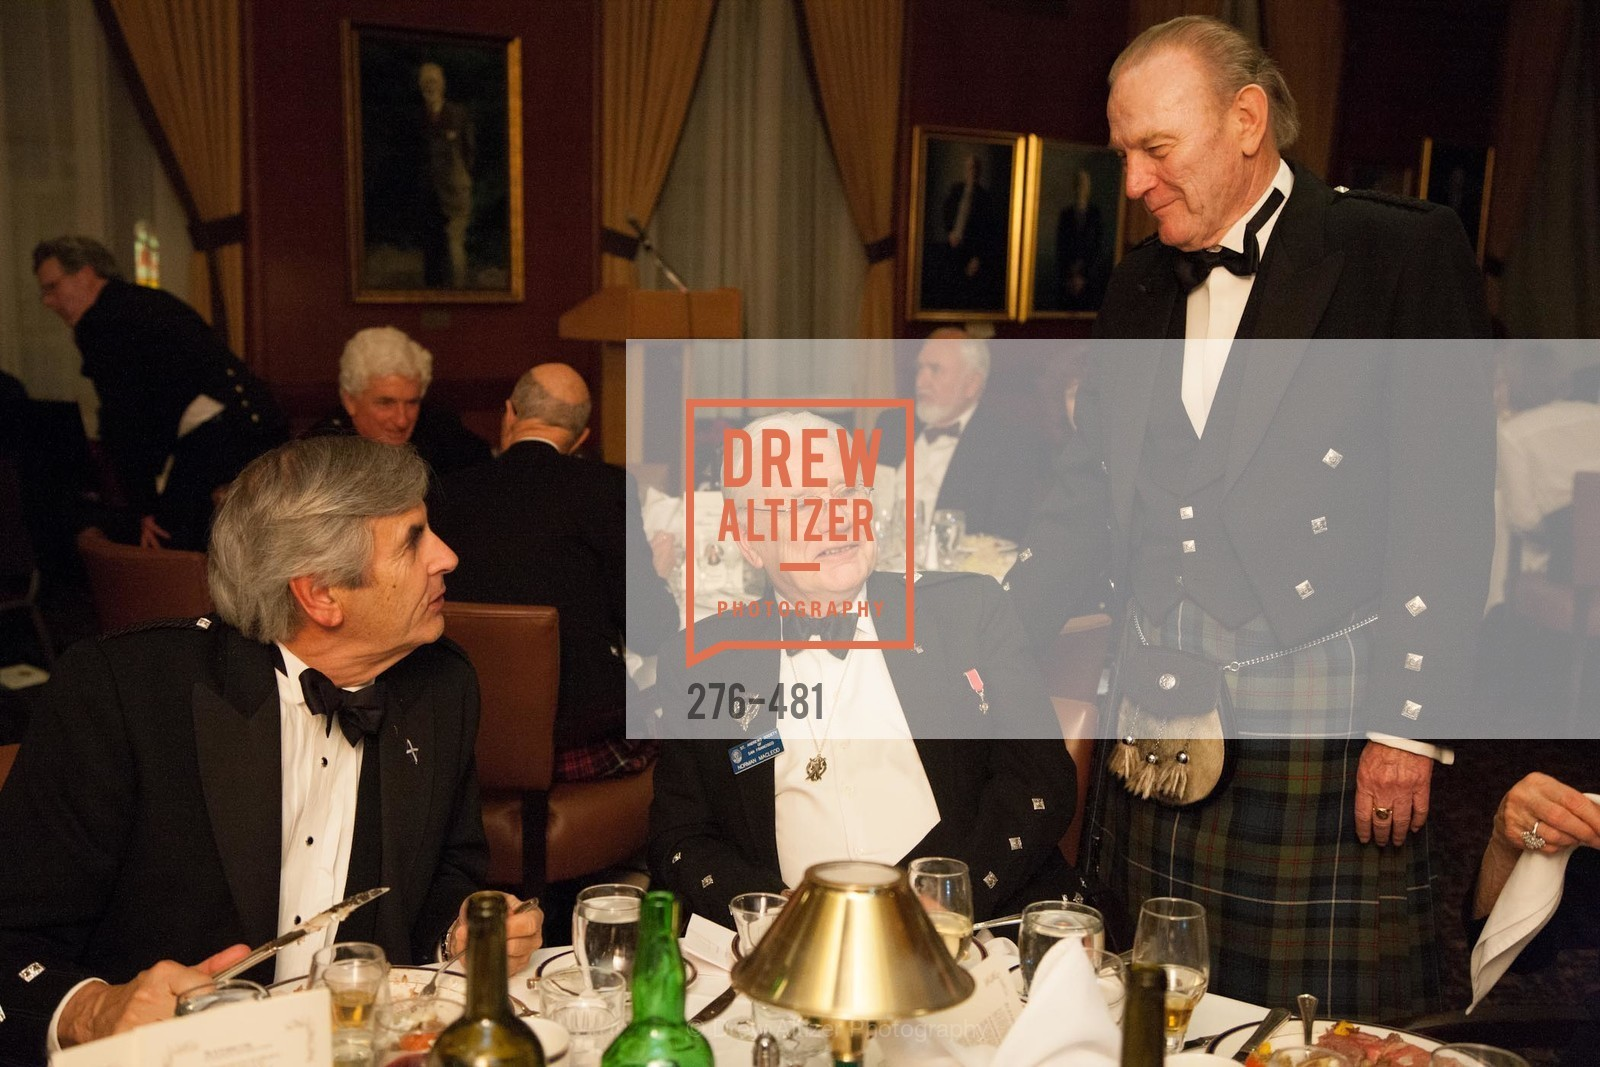 John McCorkindale, Norman MacLeod, James Robertson, ST. ANDREW'S SOCIETY OF SAN FRANCISCO'S Traditional Burns Night Supper 2014, US. US, January 25th, 2014,Drew Altizer, Drew Altizer Photography, full-service agency, private events, San Francisco photographer, photographer california